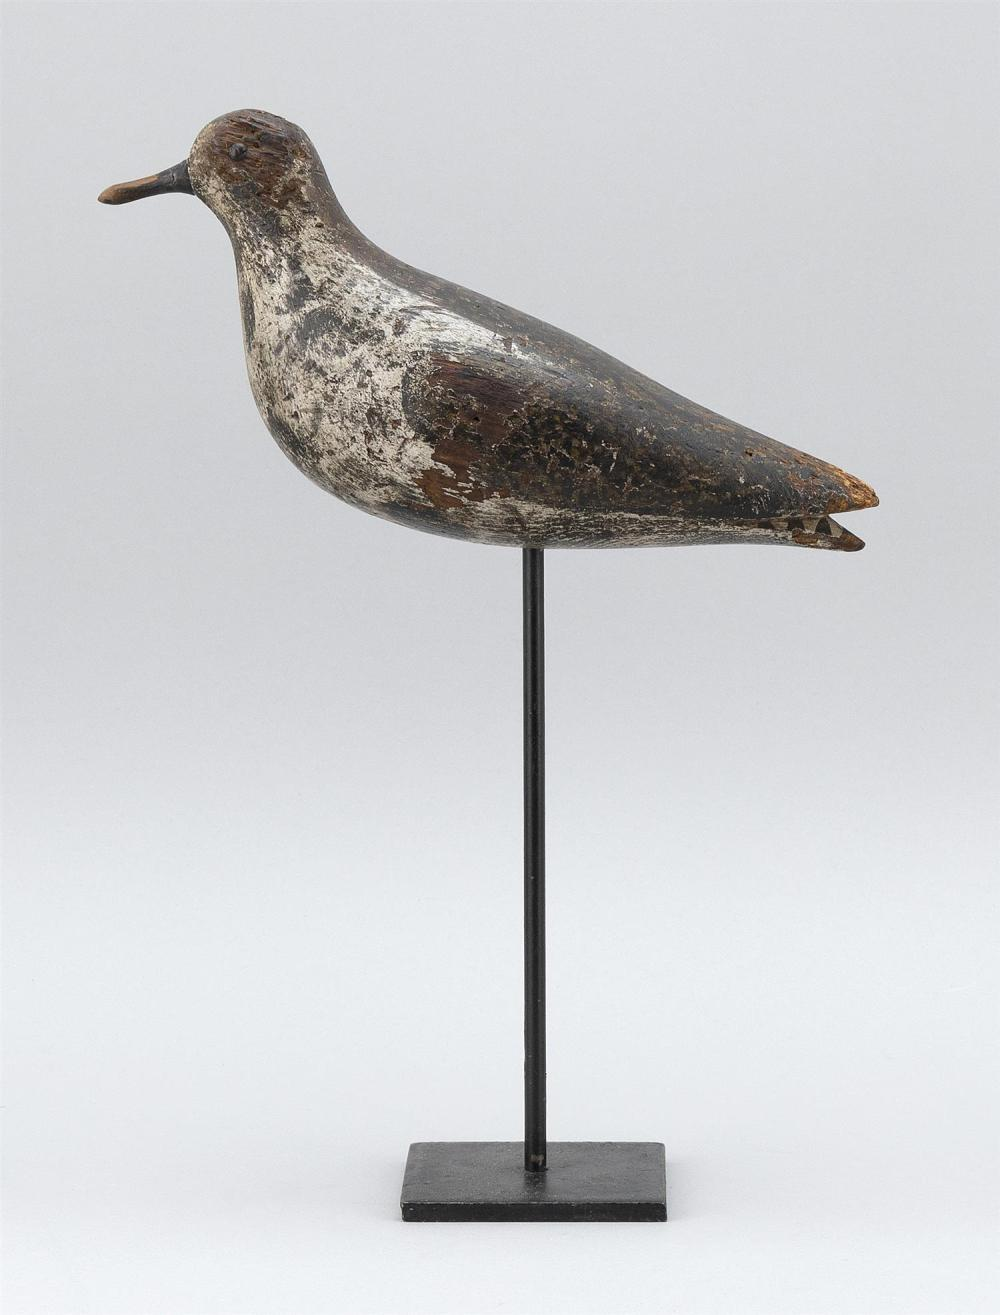 MASSACHUSETTS GOLDEN PLOVER DECOY Maker unknown. Tack eyes. Original paint with considerable gunning wear. Length 10